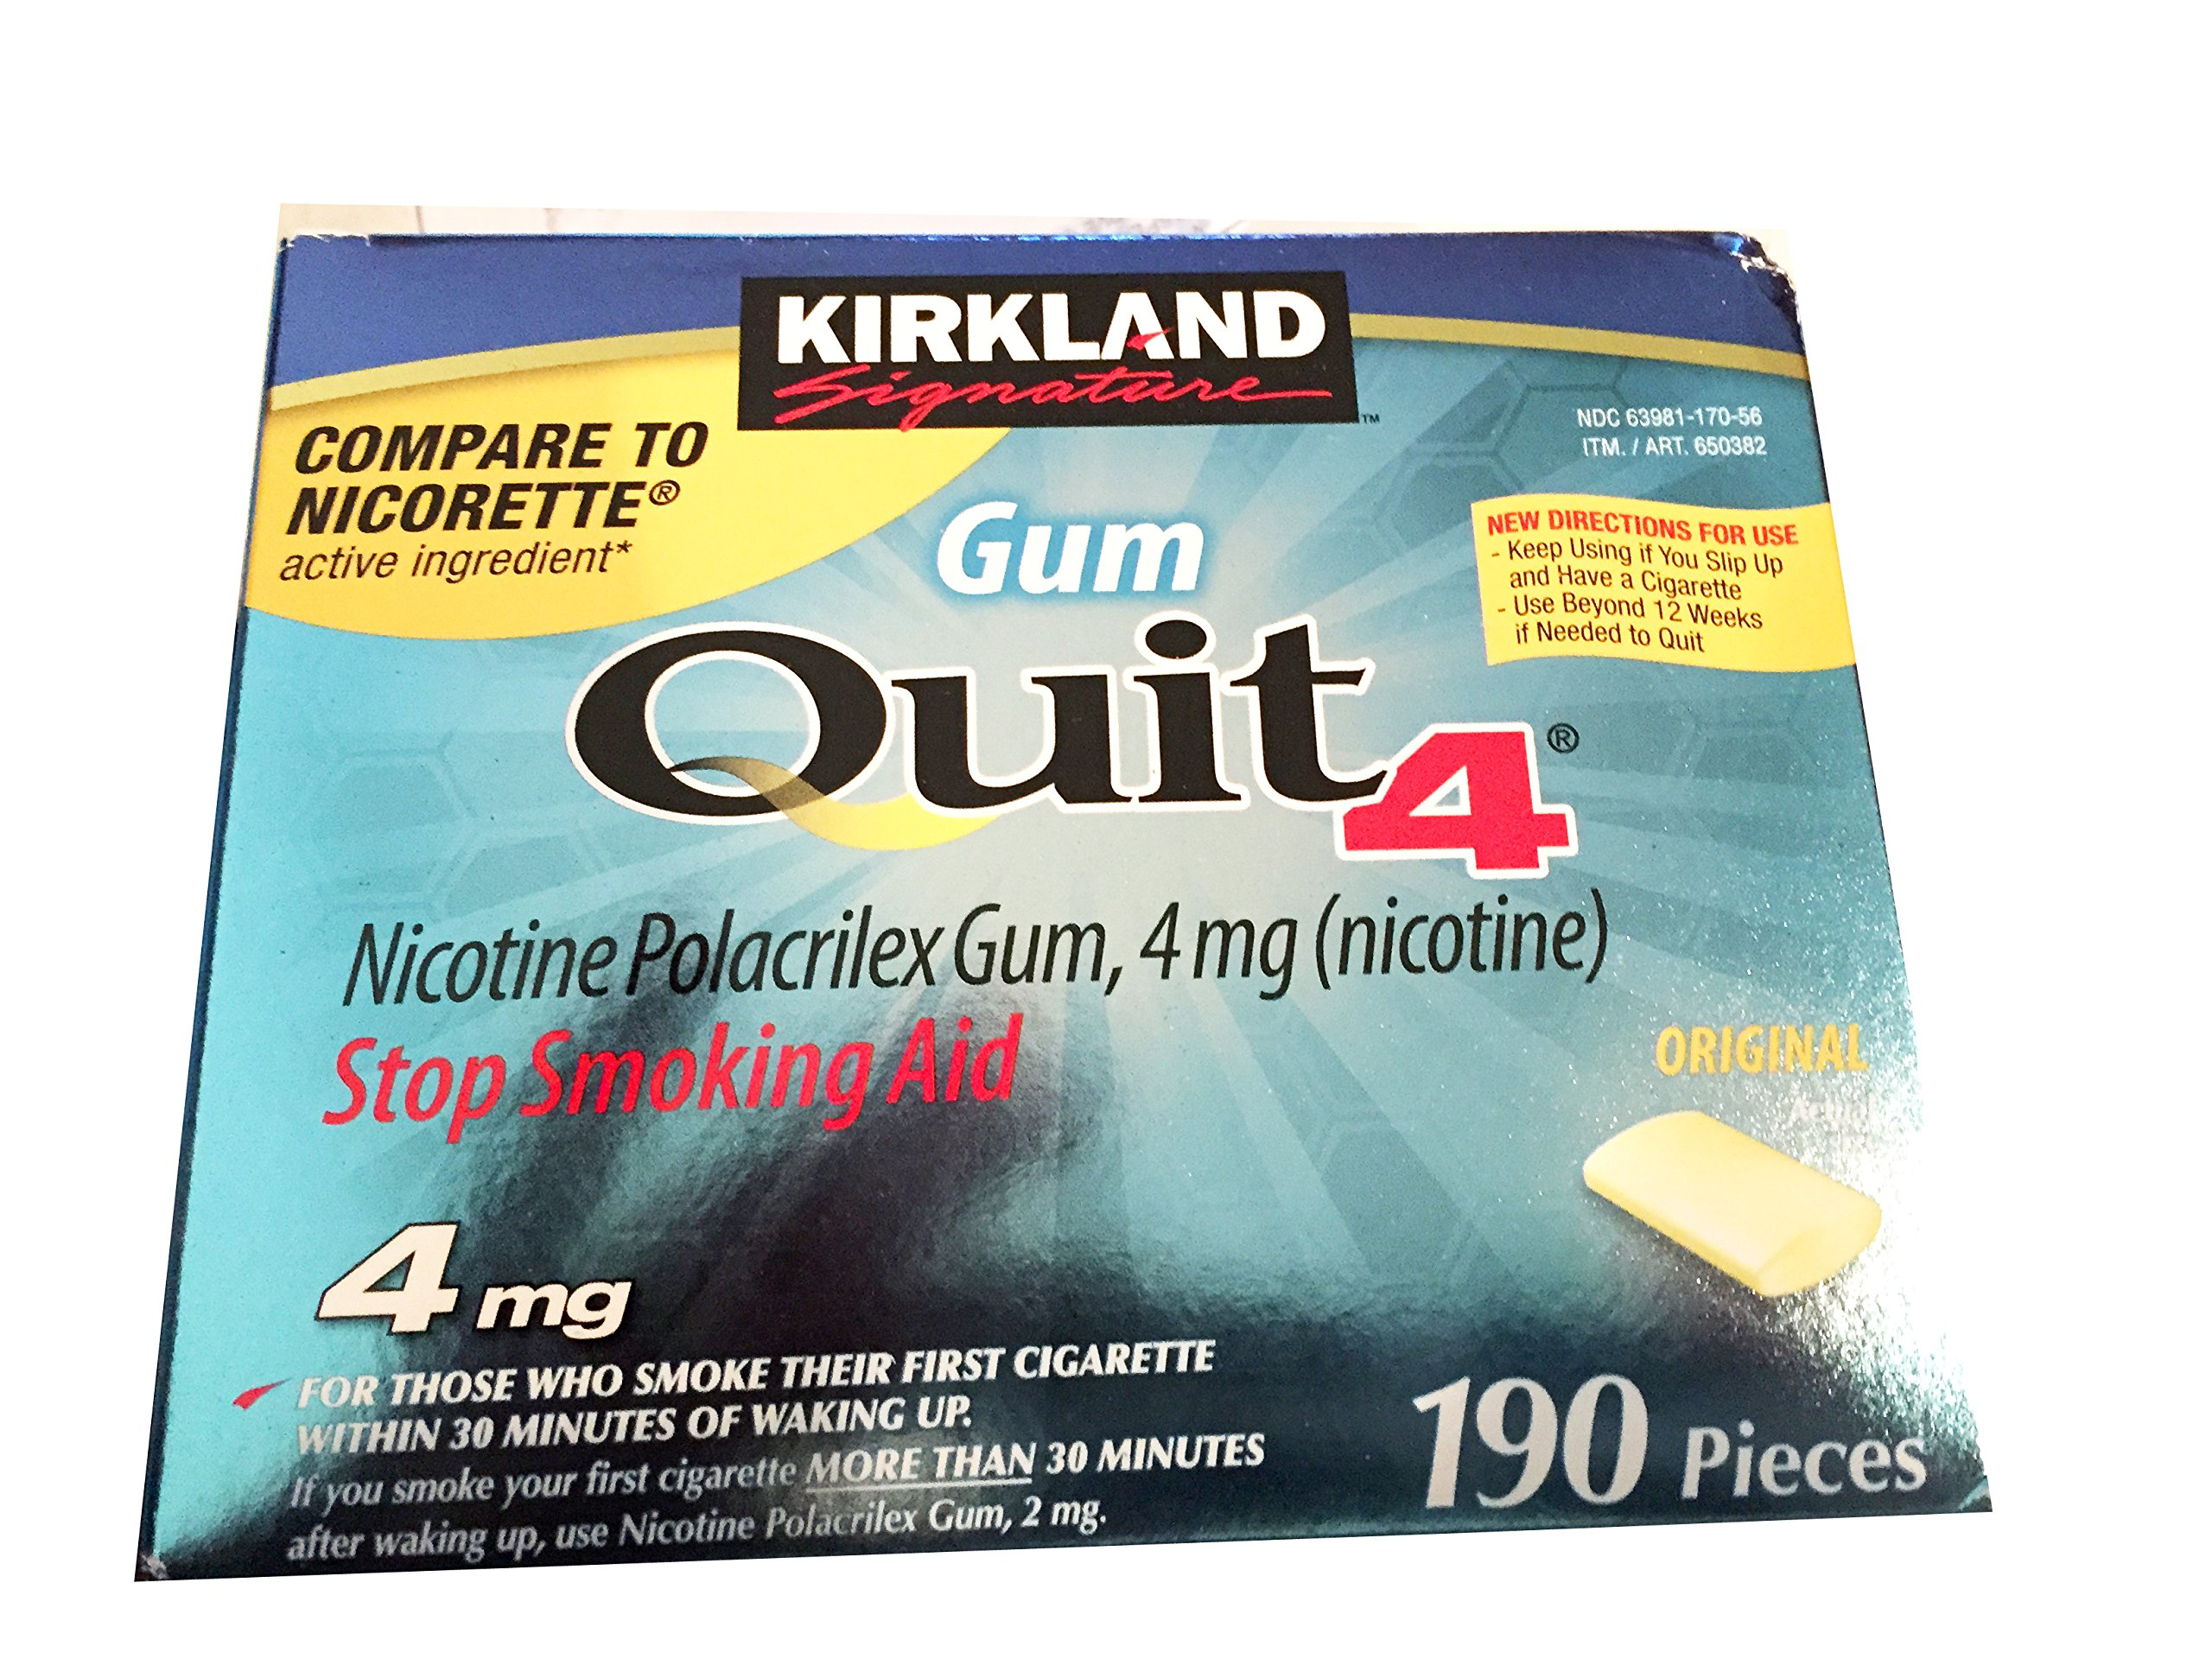 Kirkland signature Gum Quit 4 Stop Smoking Aid 190 pieces